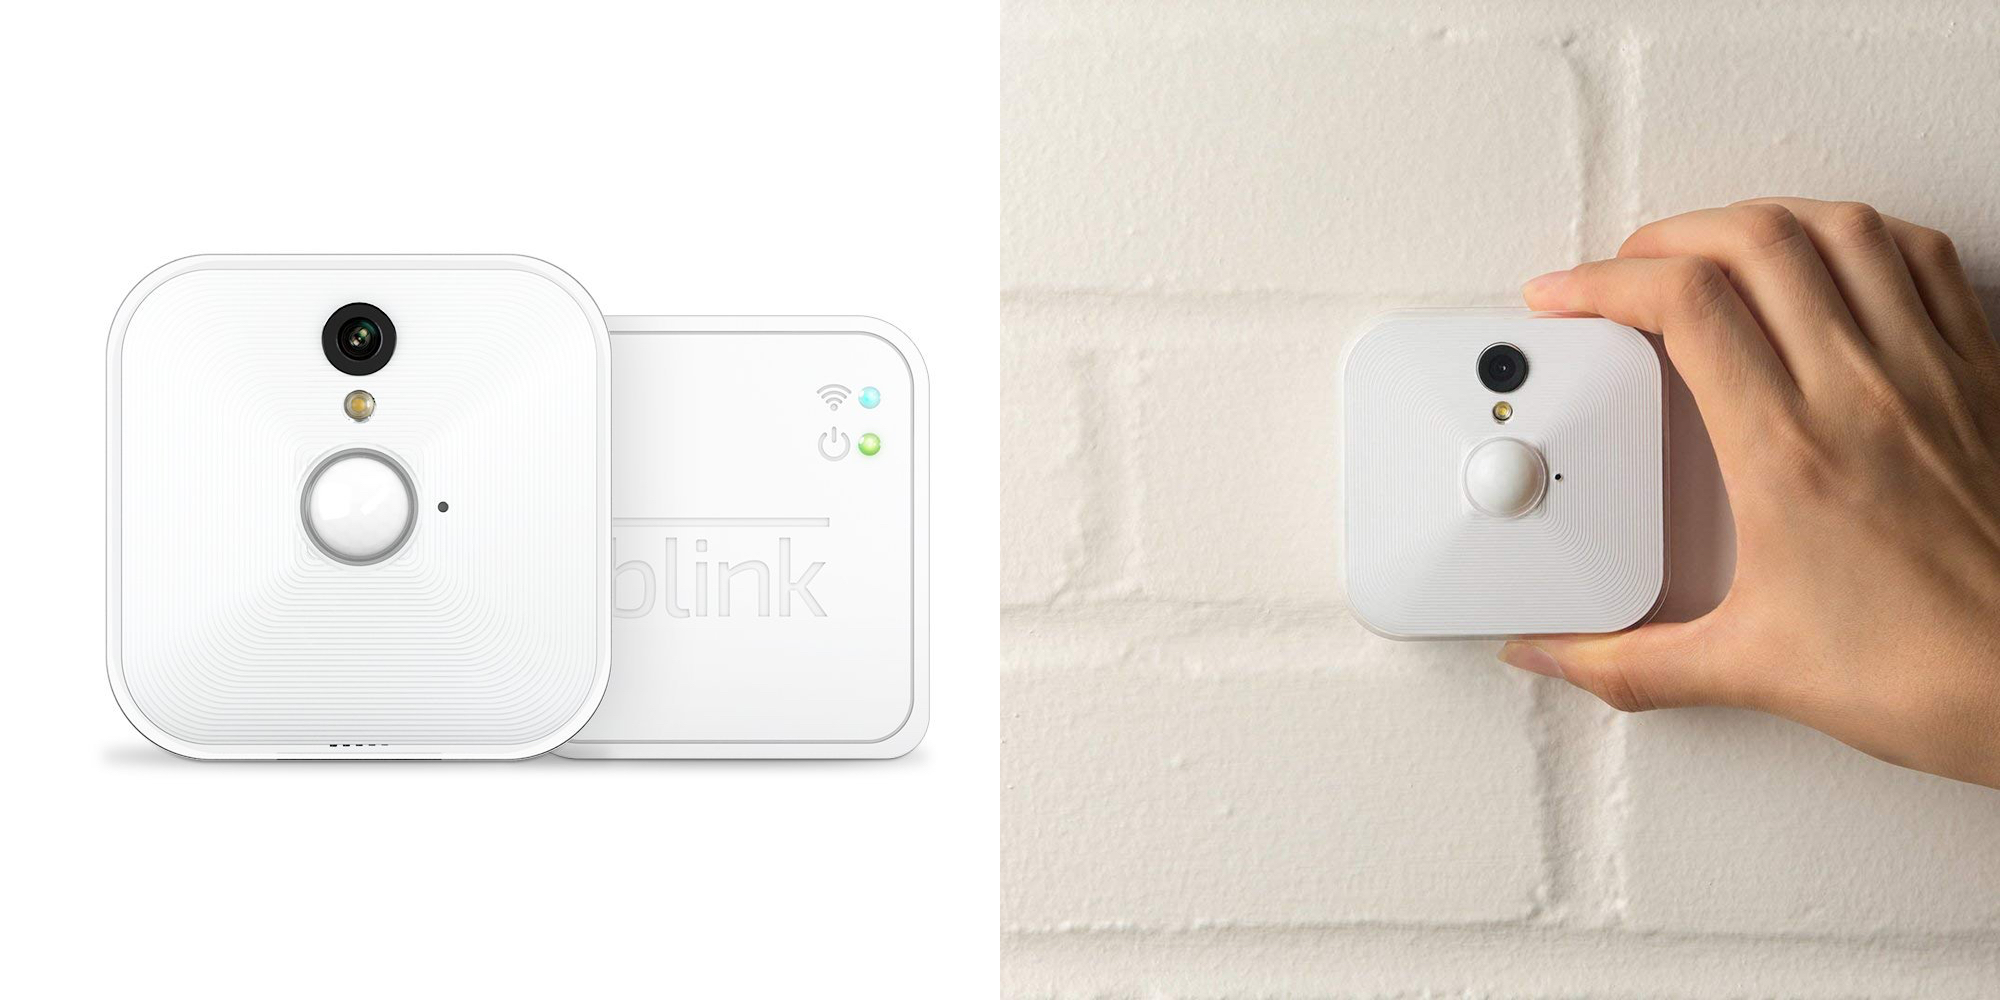 Blink Indoor Security Camera System